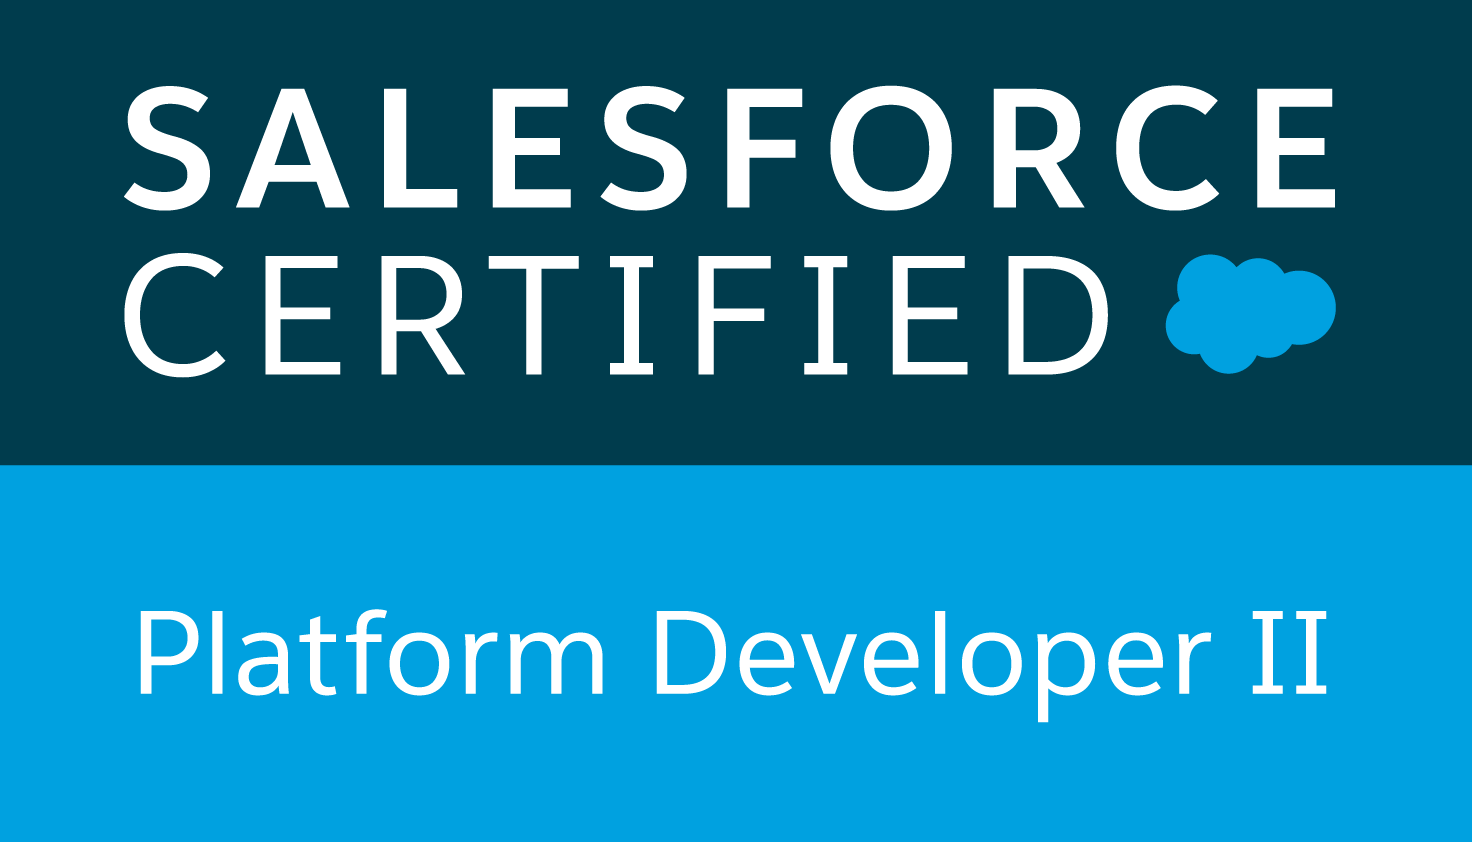 Platform Developer II